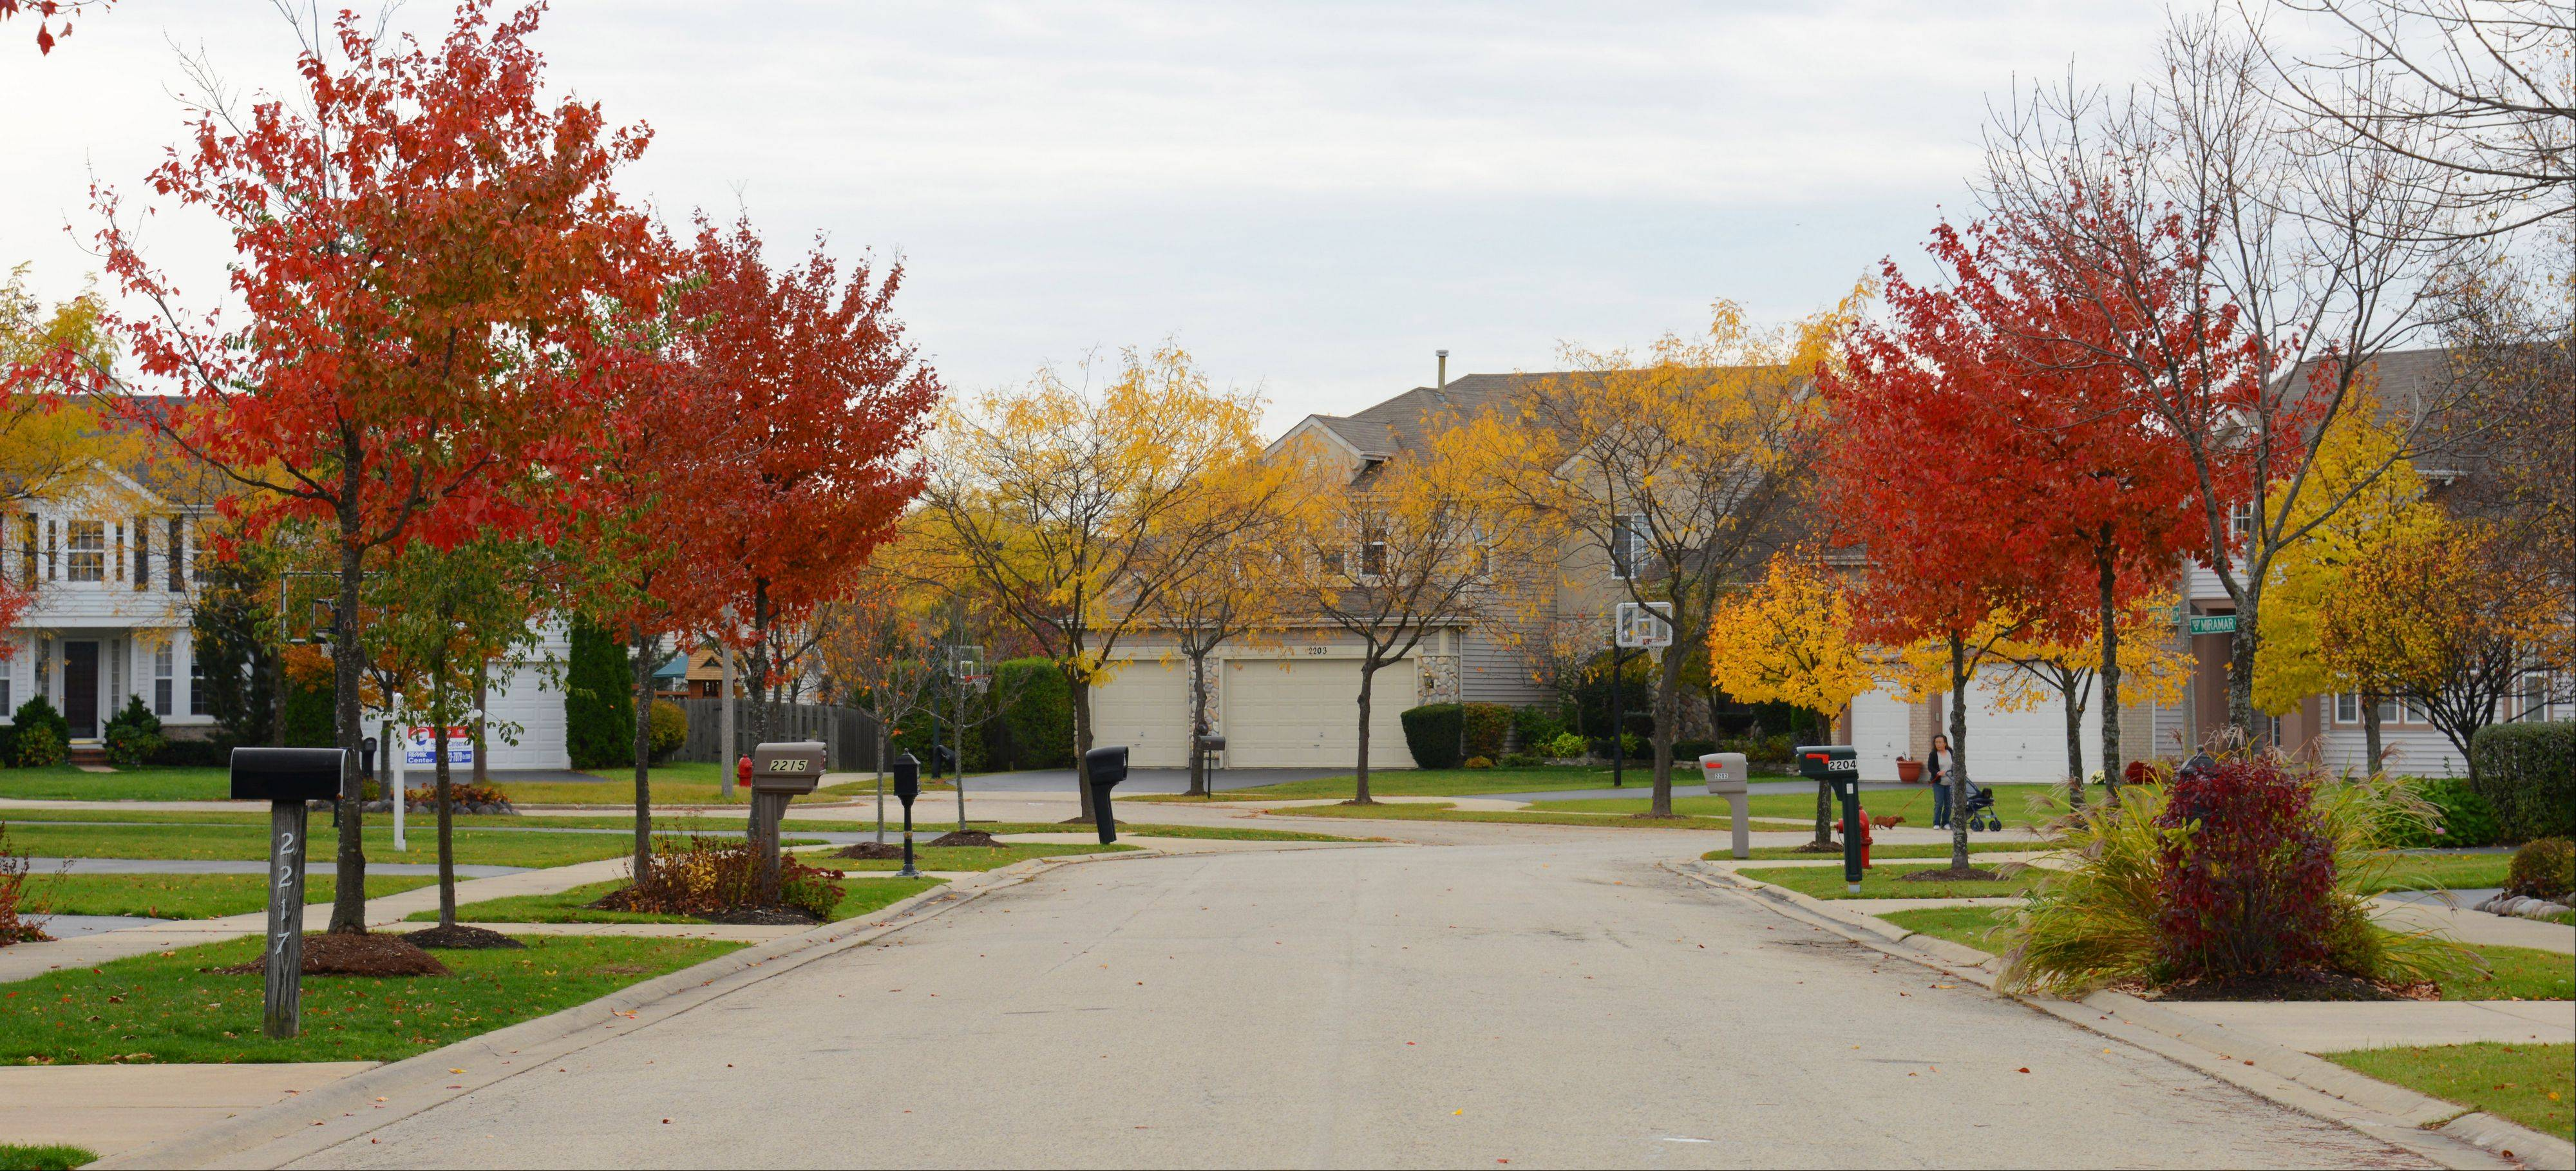 The houses in Buffalo Grove's Mirielle neighborhood were built by Town and Country Homes in the late 1990s.